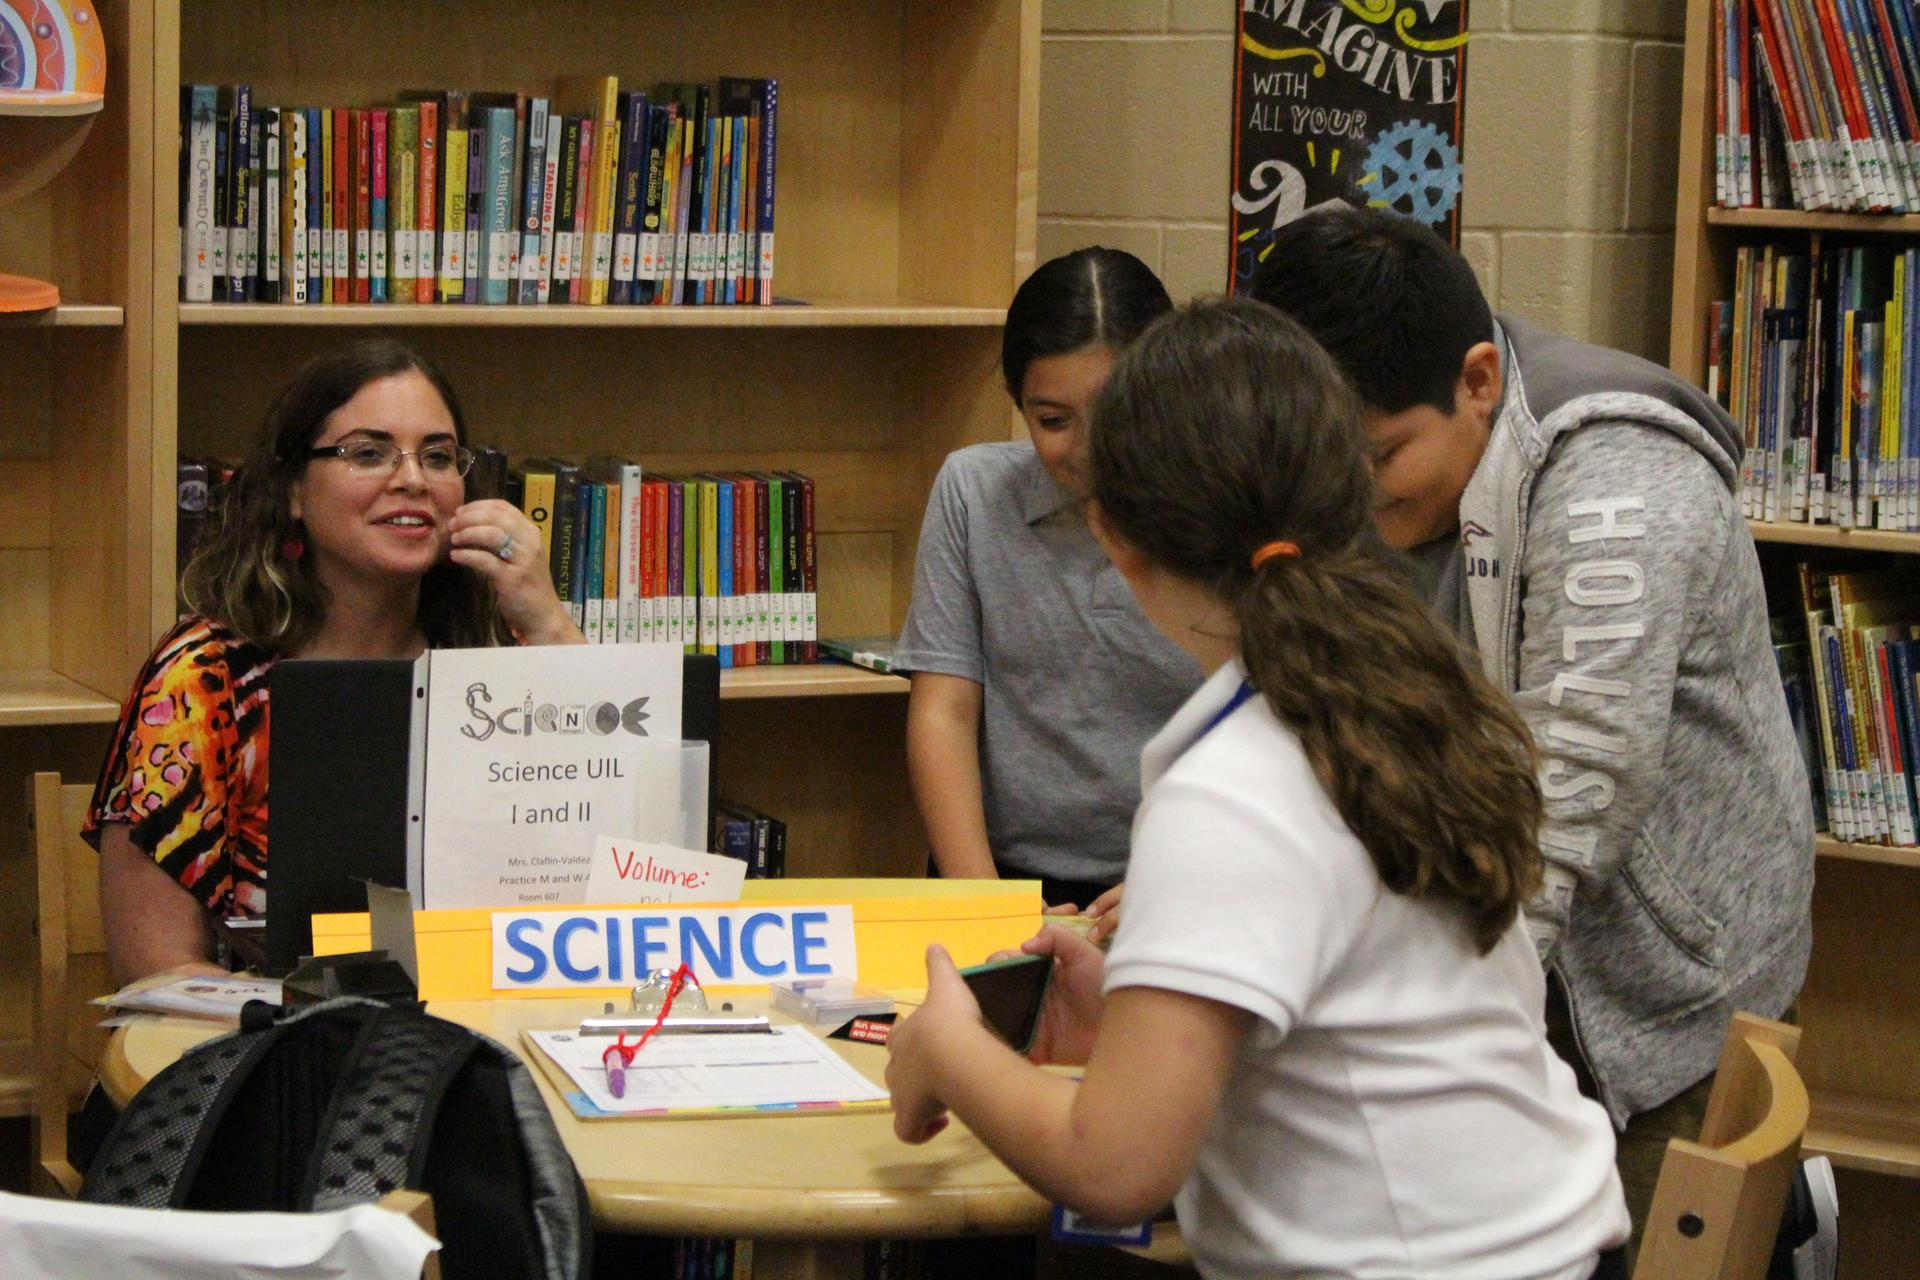 Mrs. Claflin-Valdez explaining what Science events is about